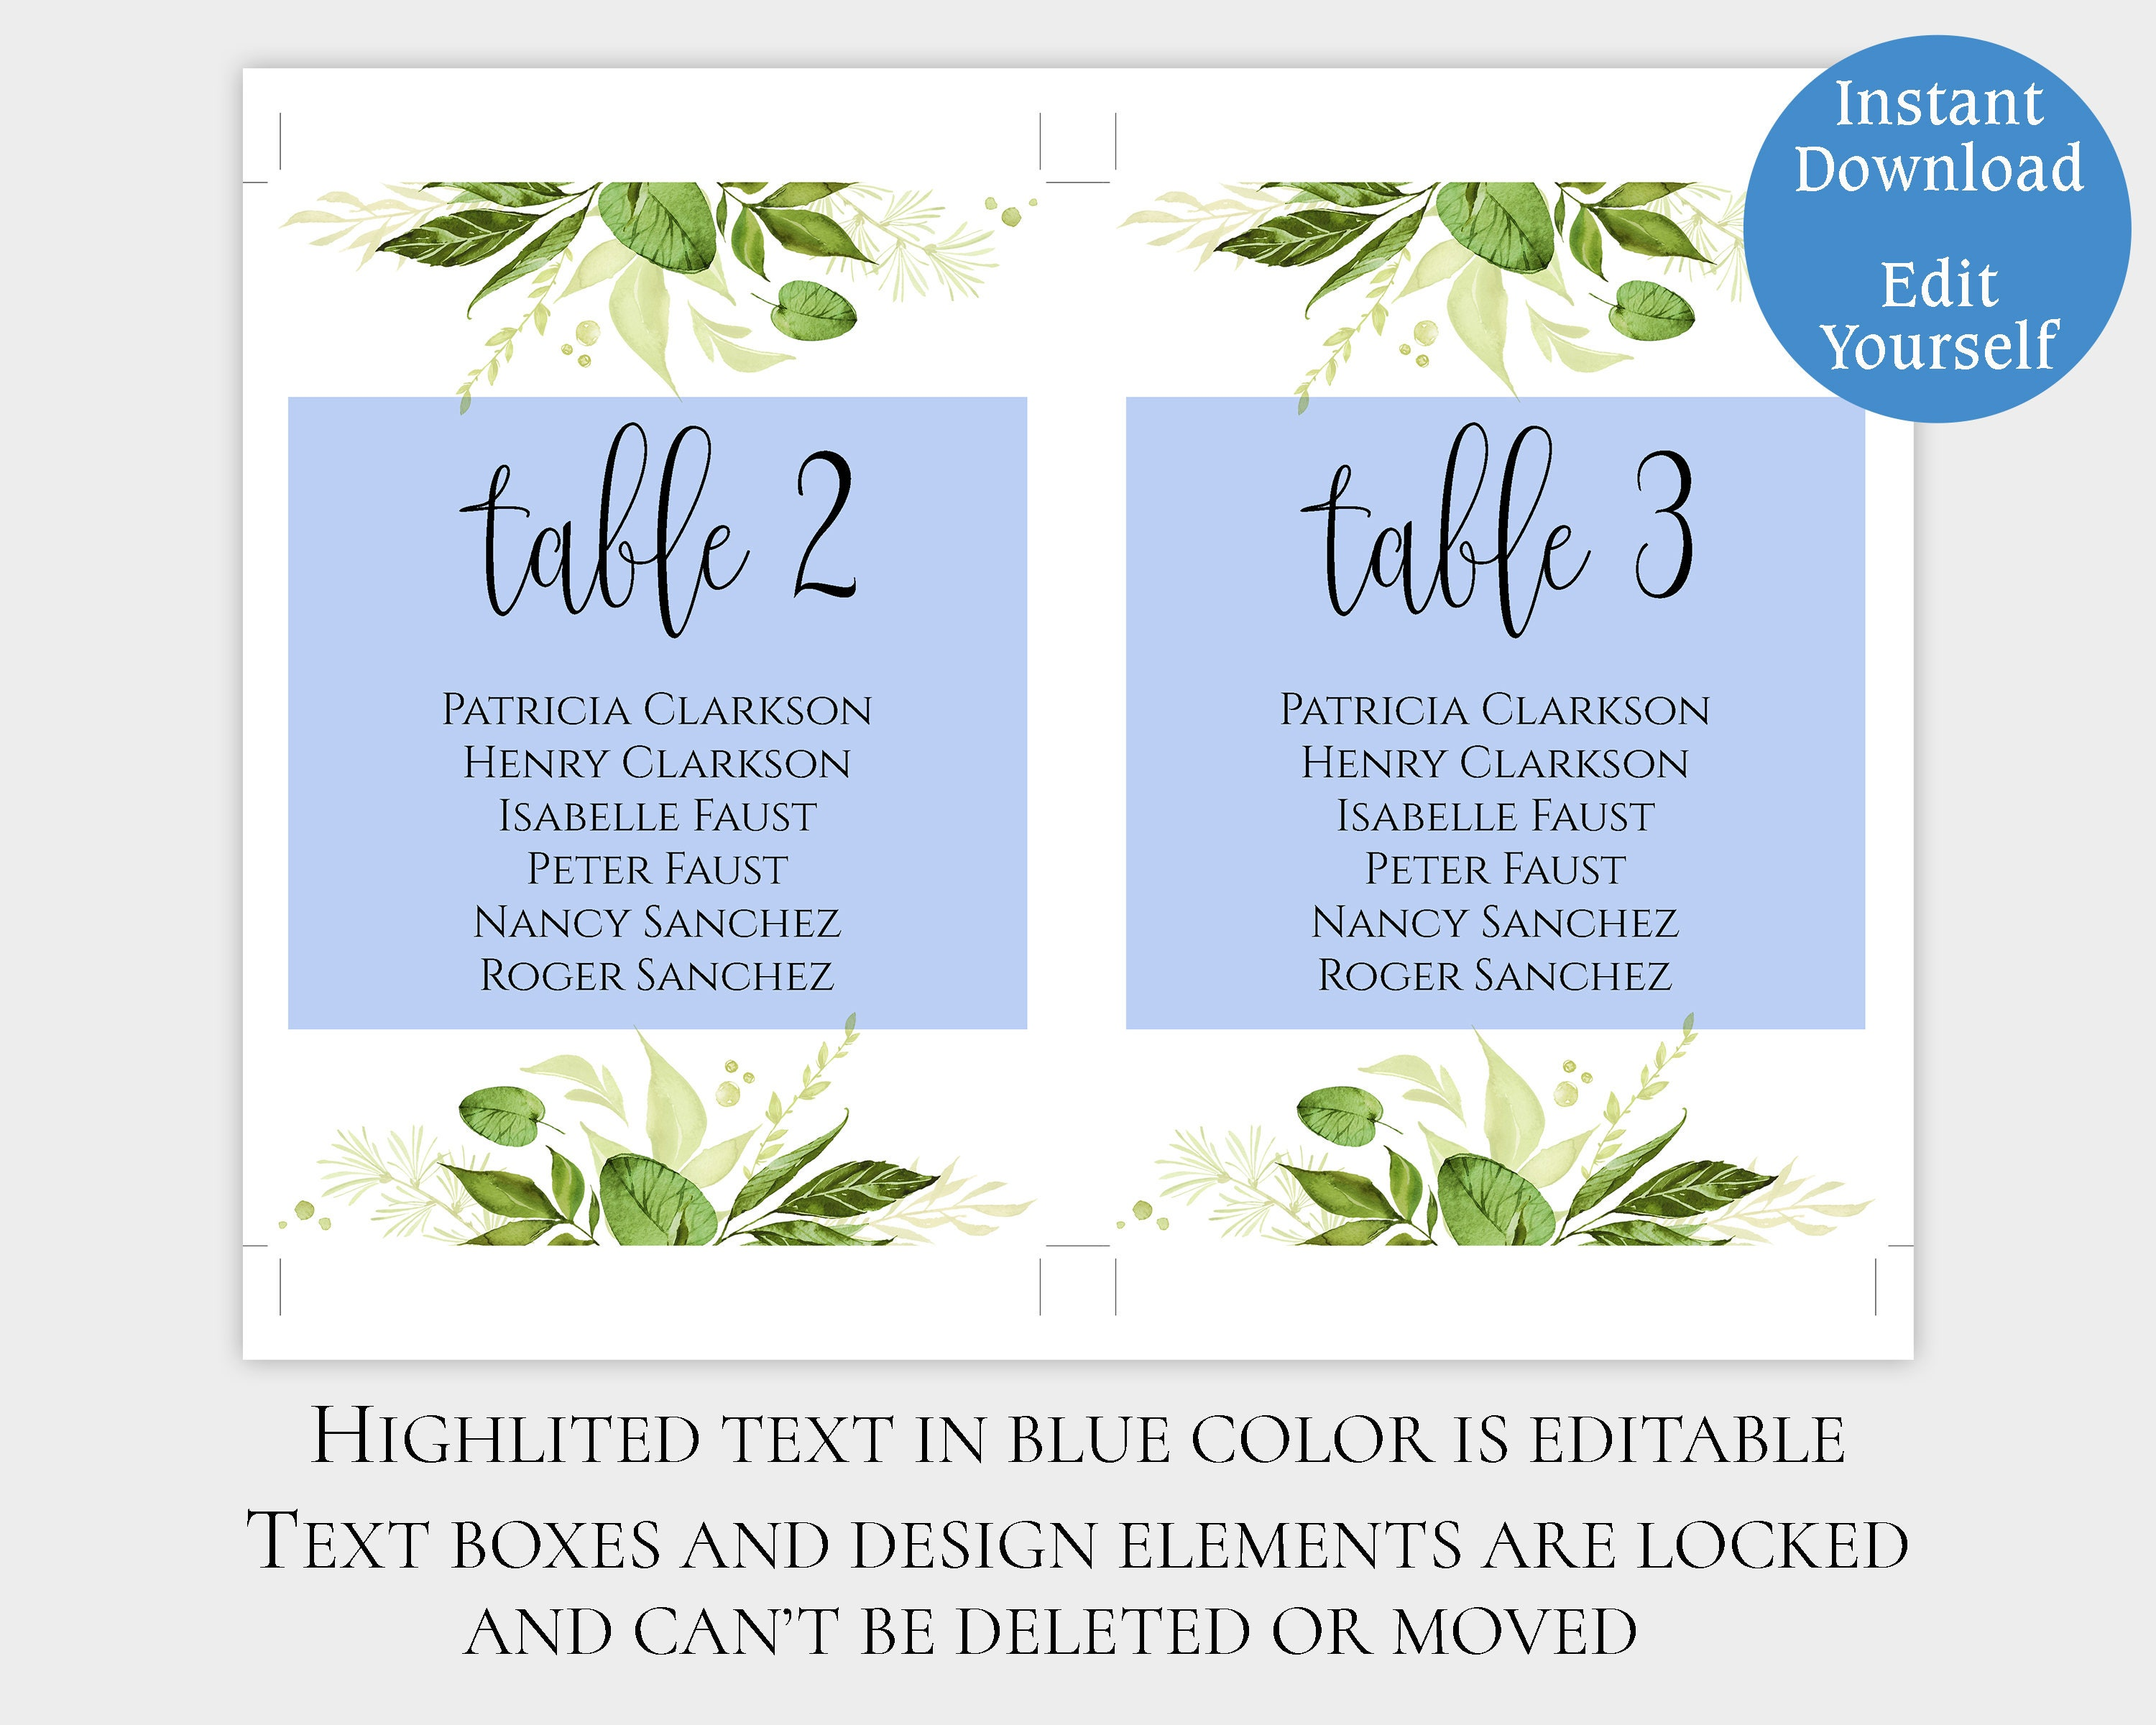 Banquet seating chart template kardasklmphotography banquet seating chart template toneelgroepblik Images